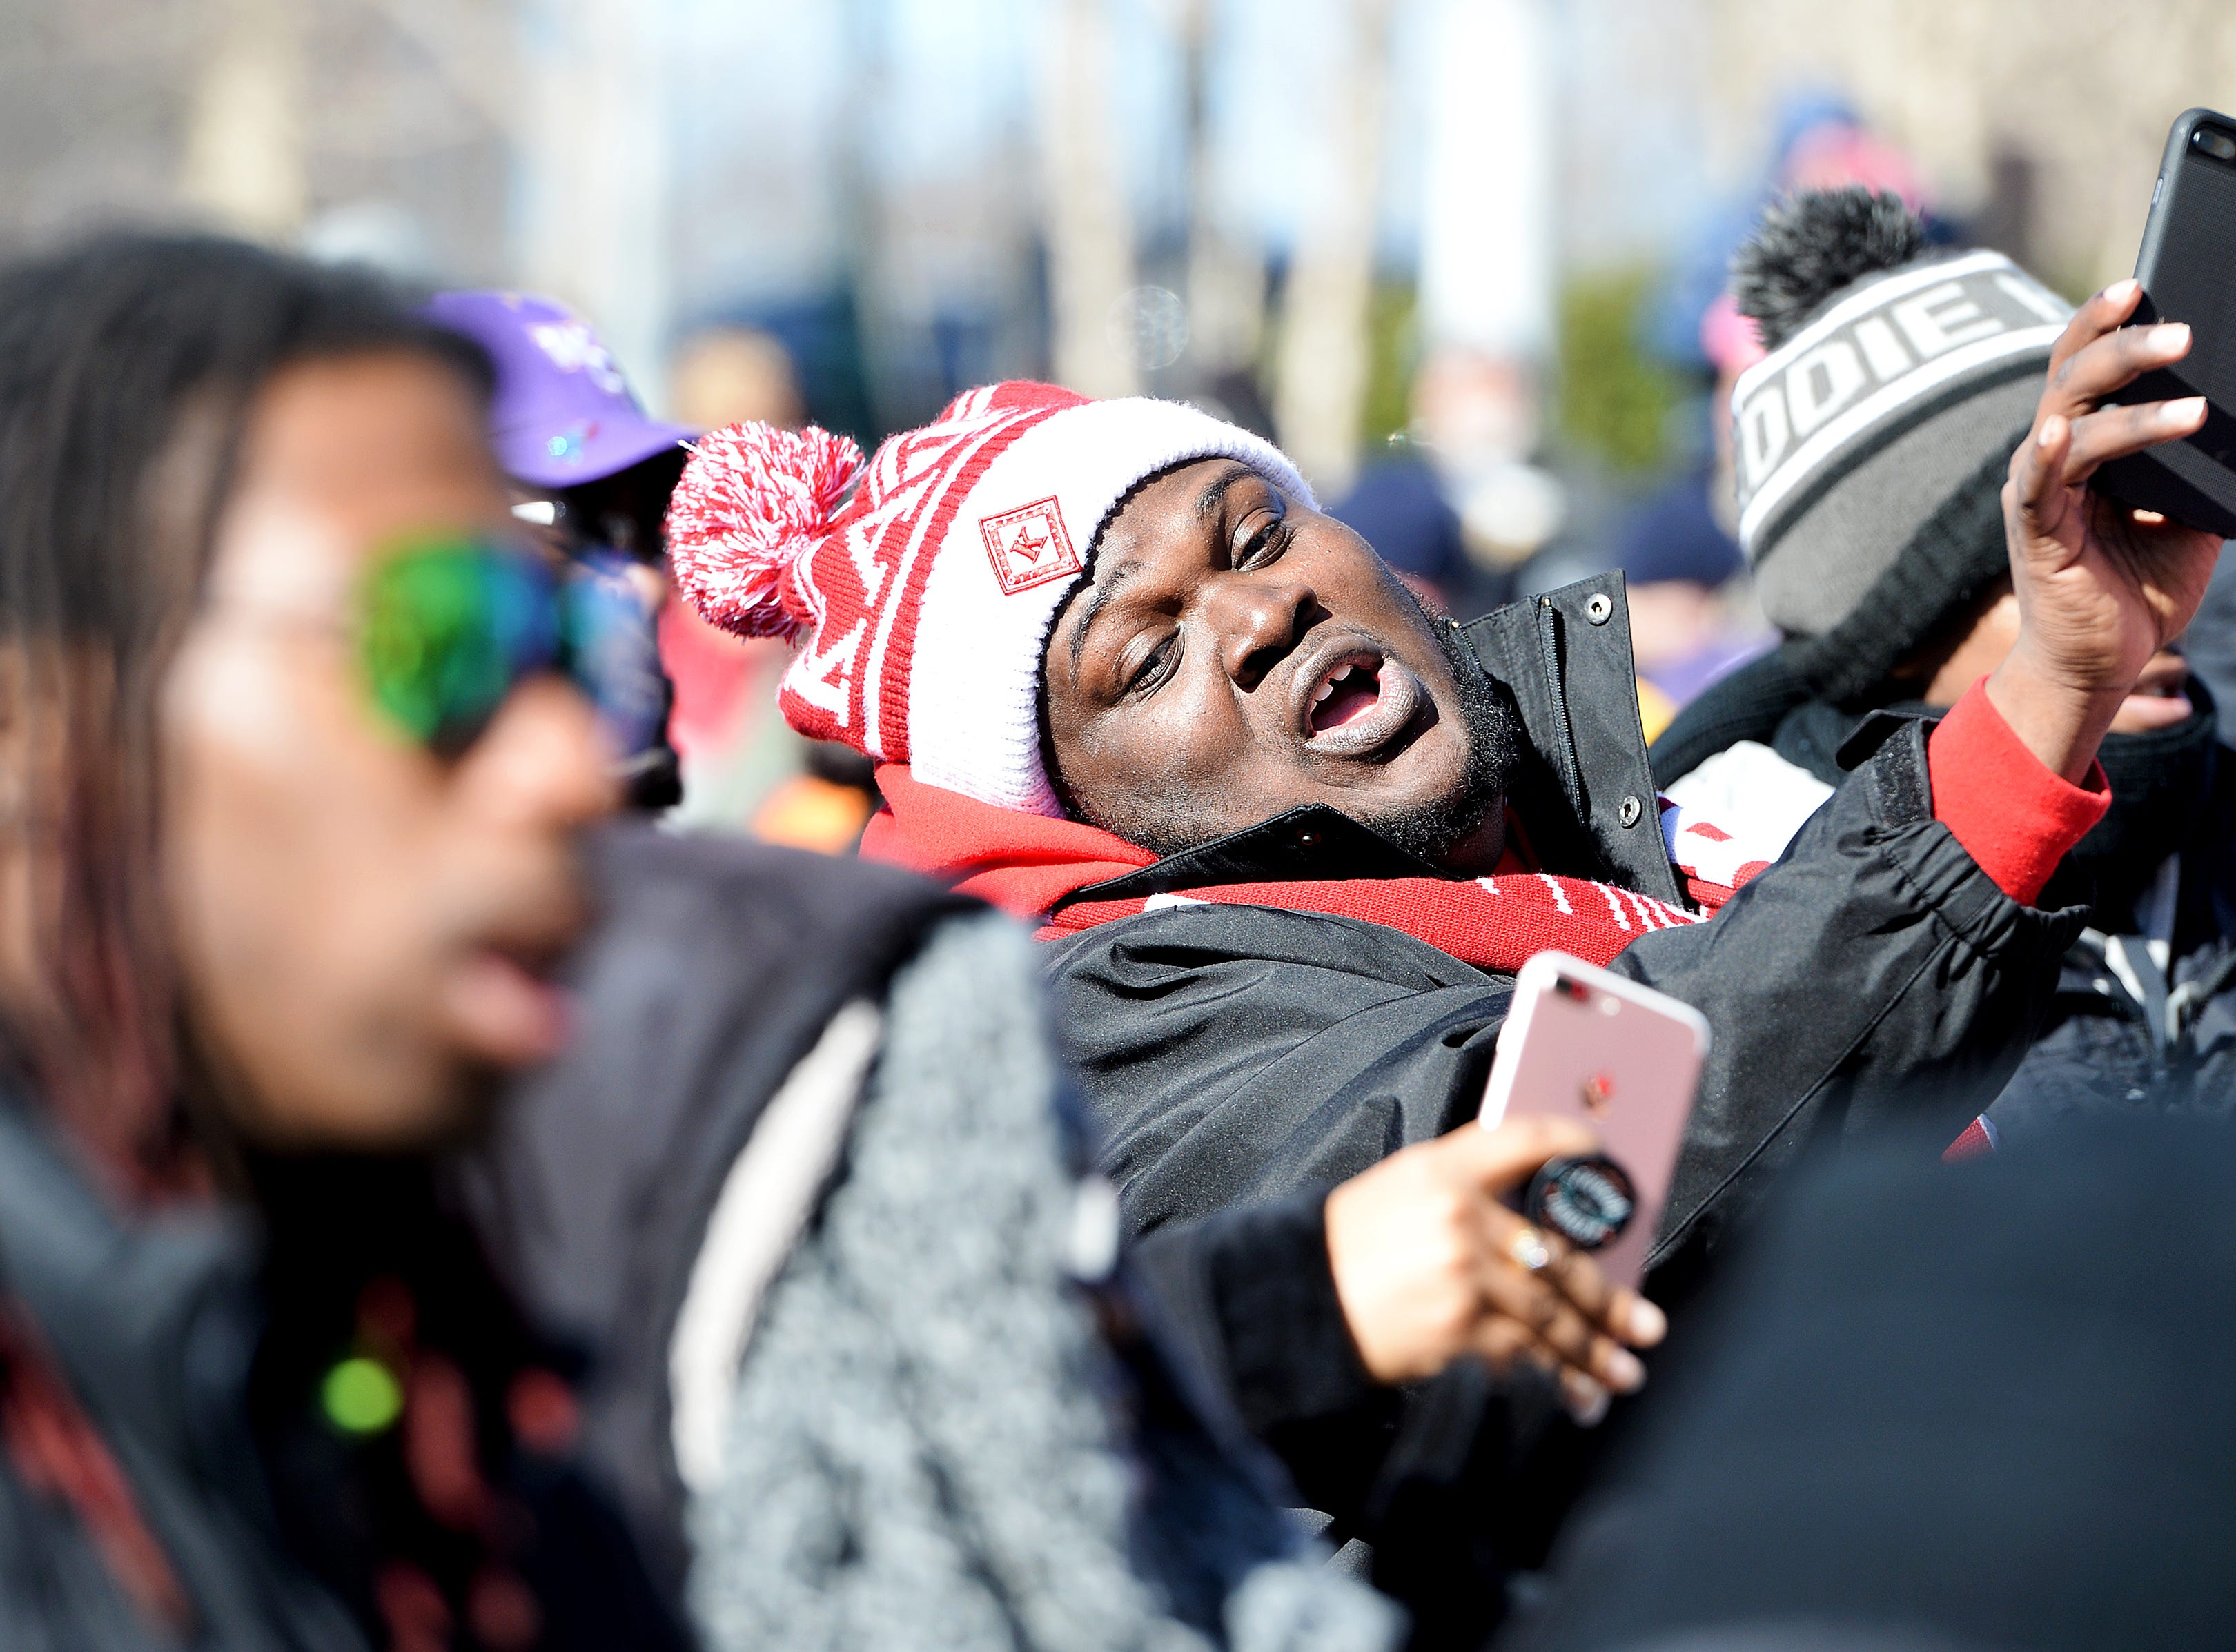 Stephen Blount takes a cell phone video as the crowd dances during the Dr. Martin Luther King, Jr. Peace March and Rally at Pack Square Park on Jan. 21, 2019.